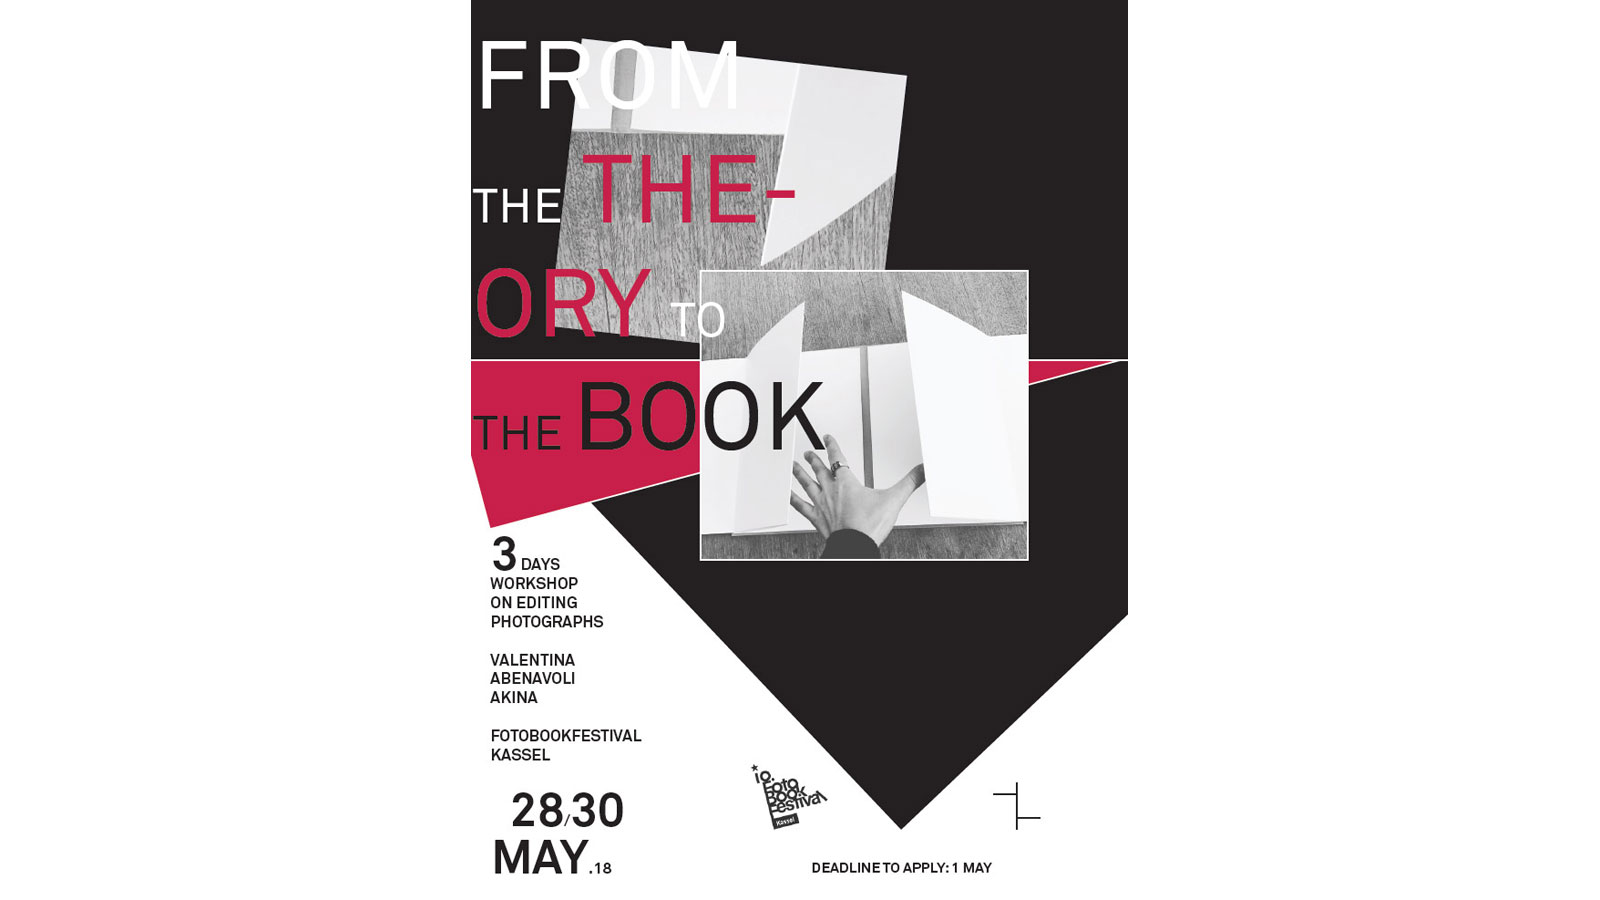 FOTOBOOKFESTIVAL KASSEL 2018 |Workshop »FROM THE THEORY TO THE BOOK« With Valentina Abenavoli / AKINA Books